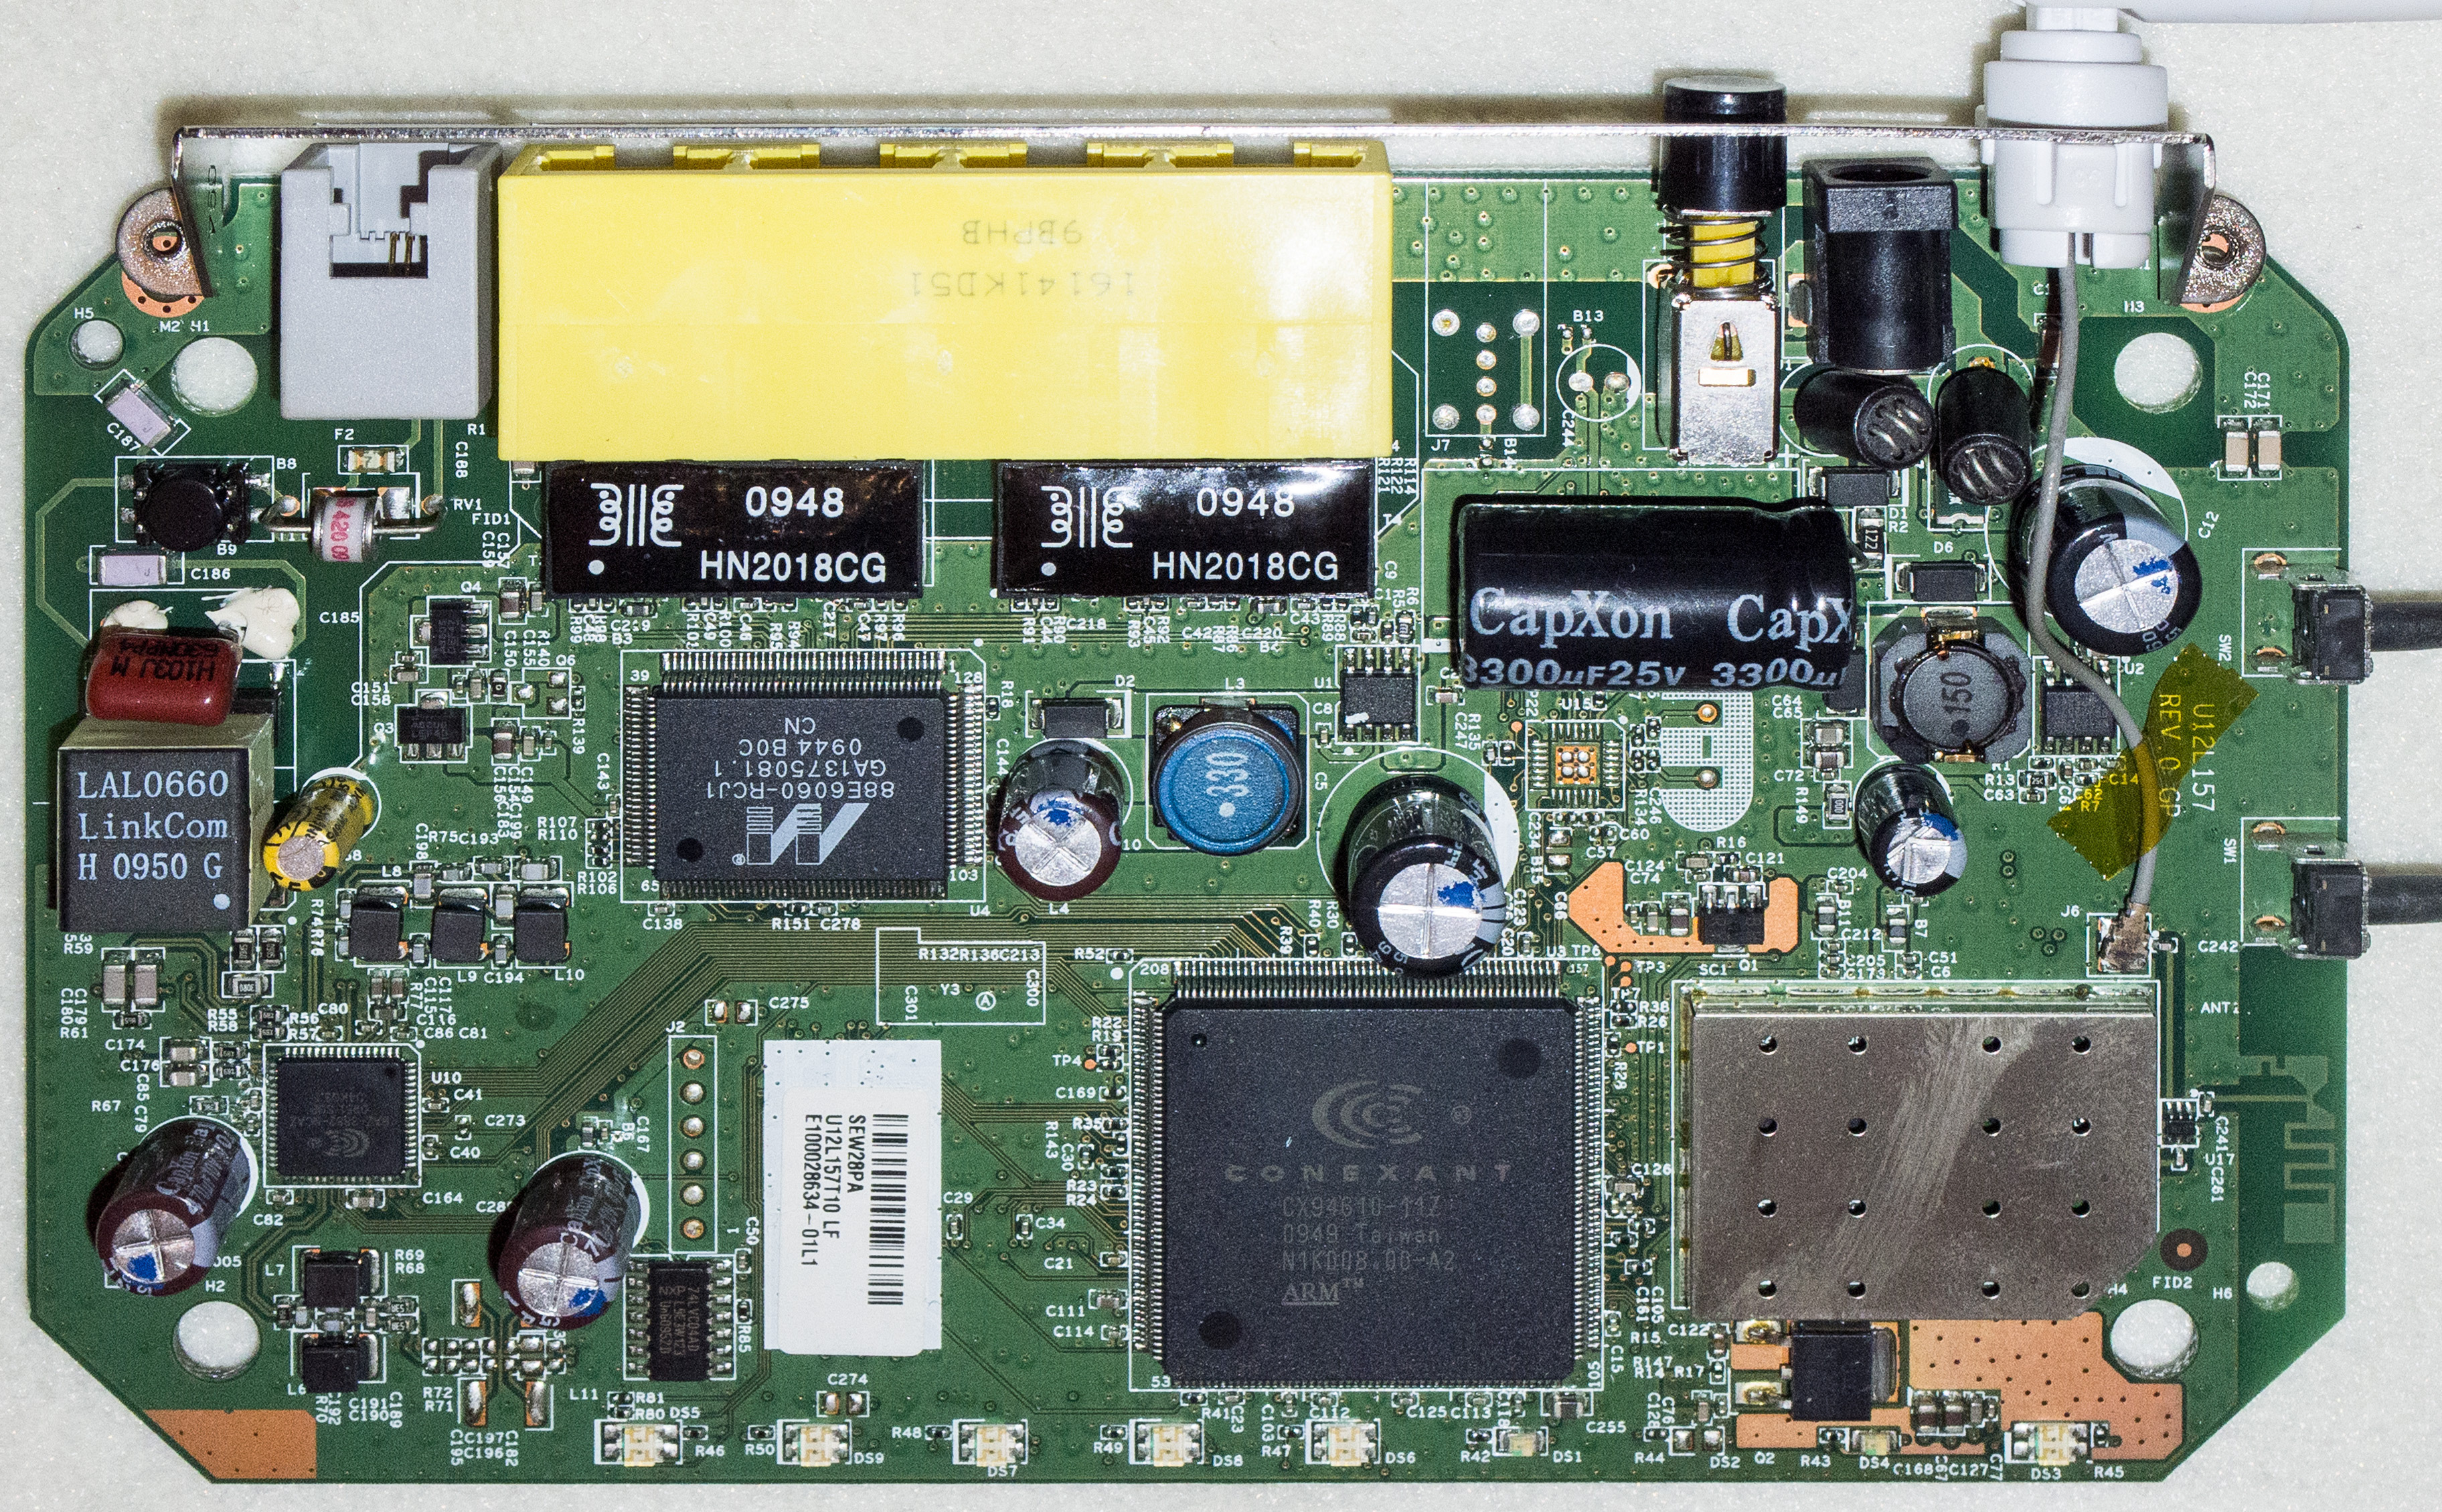 Front side Netgear DG834GB v5 board